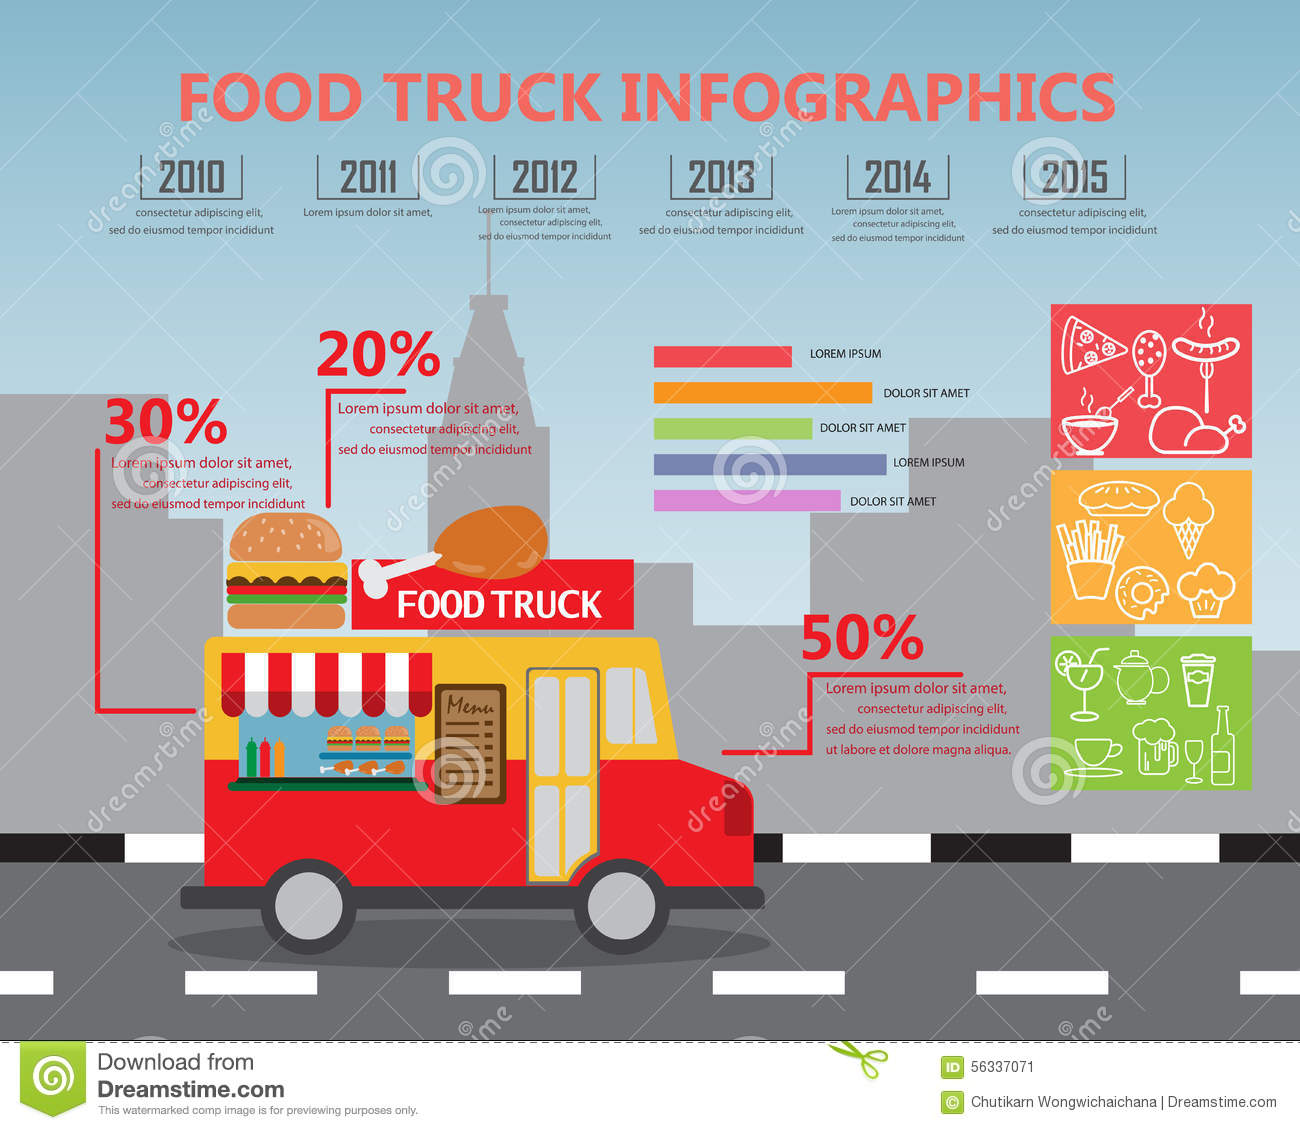 fod truck infographics stock vector